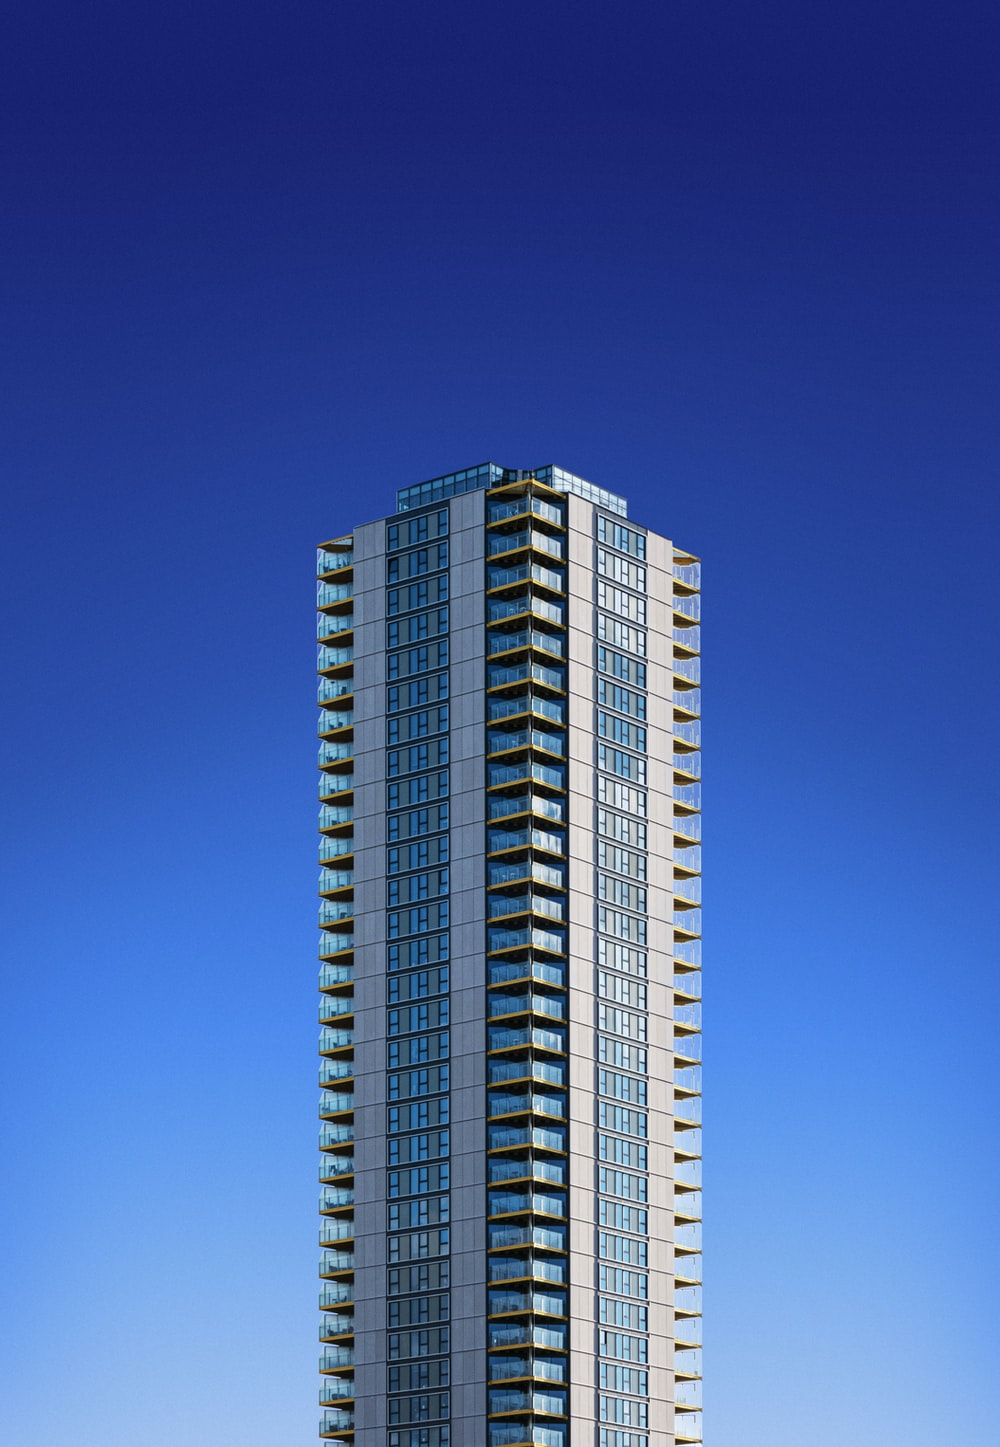 white and blue high rise building under blue sky during daytime